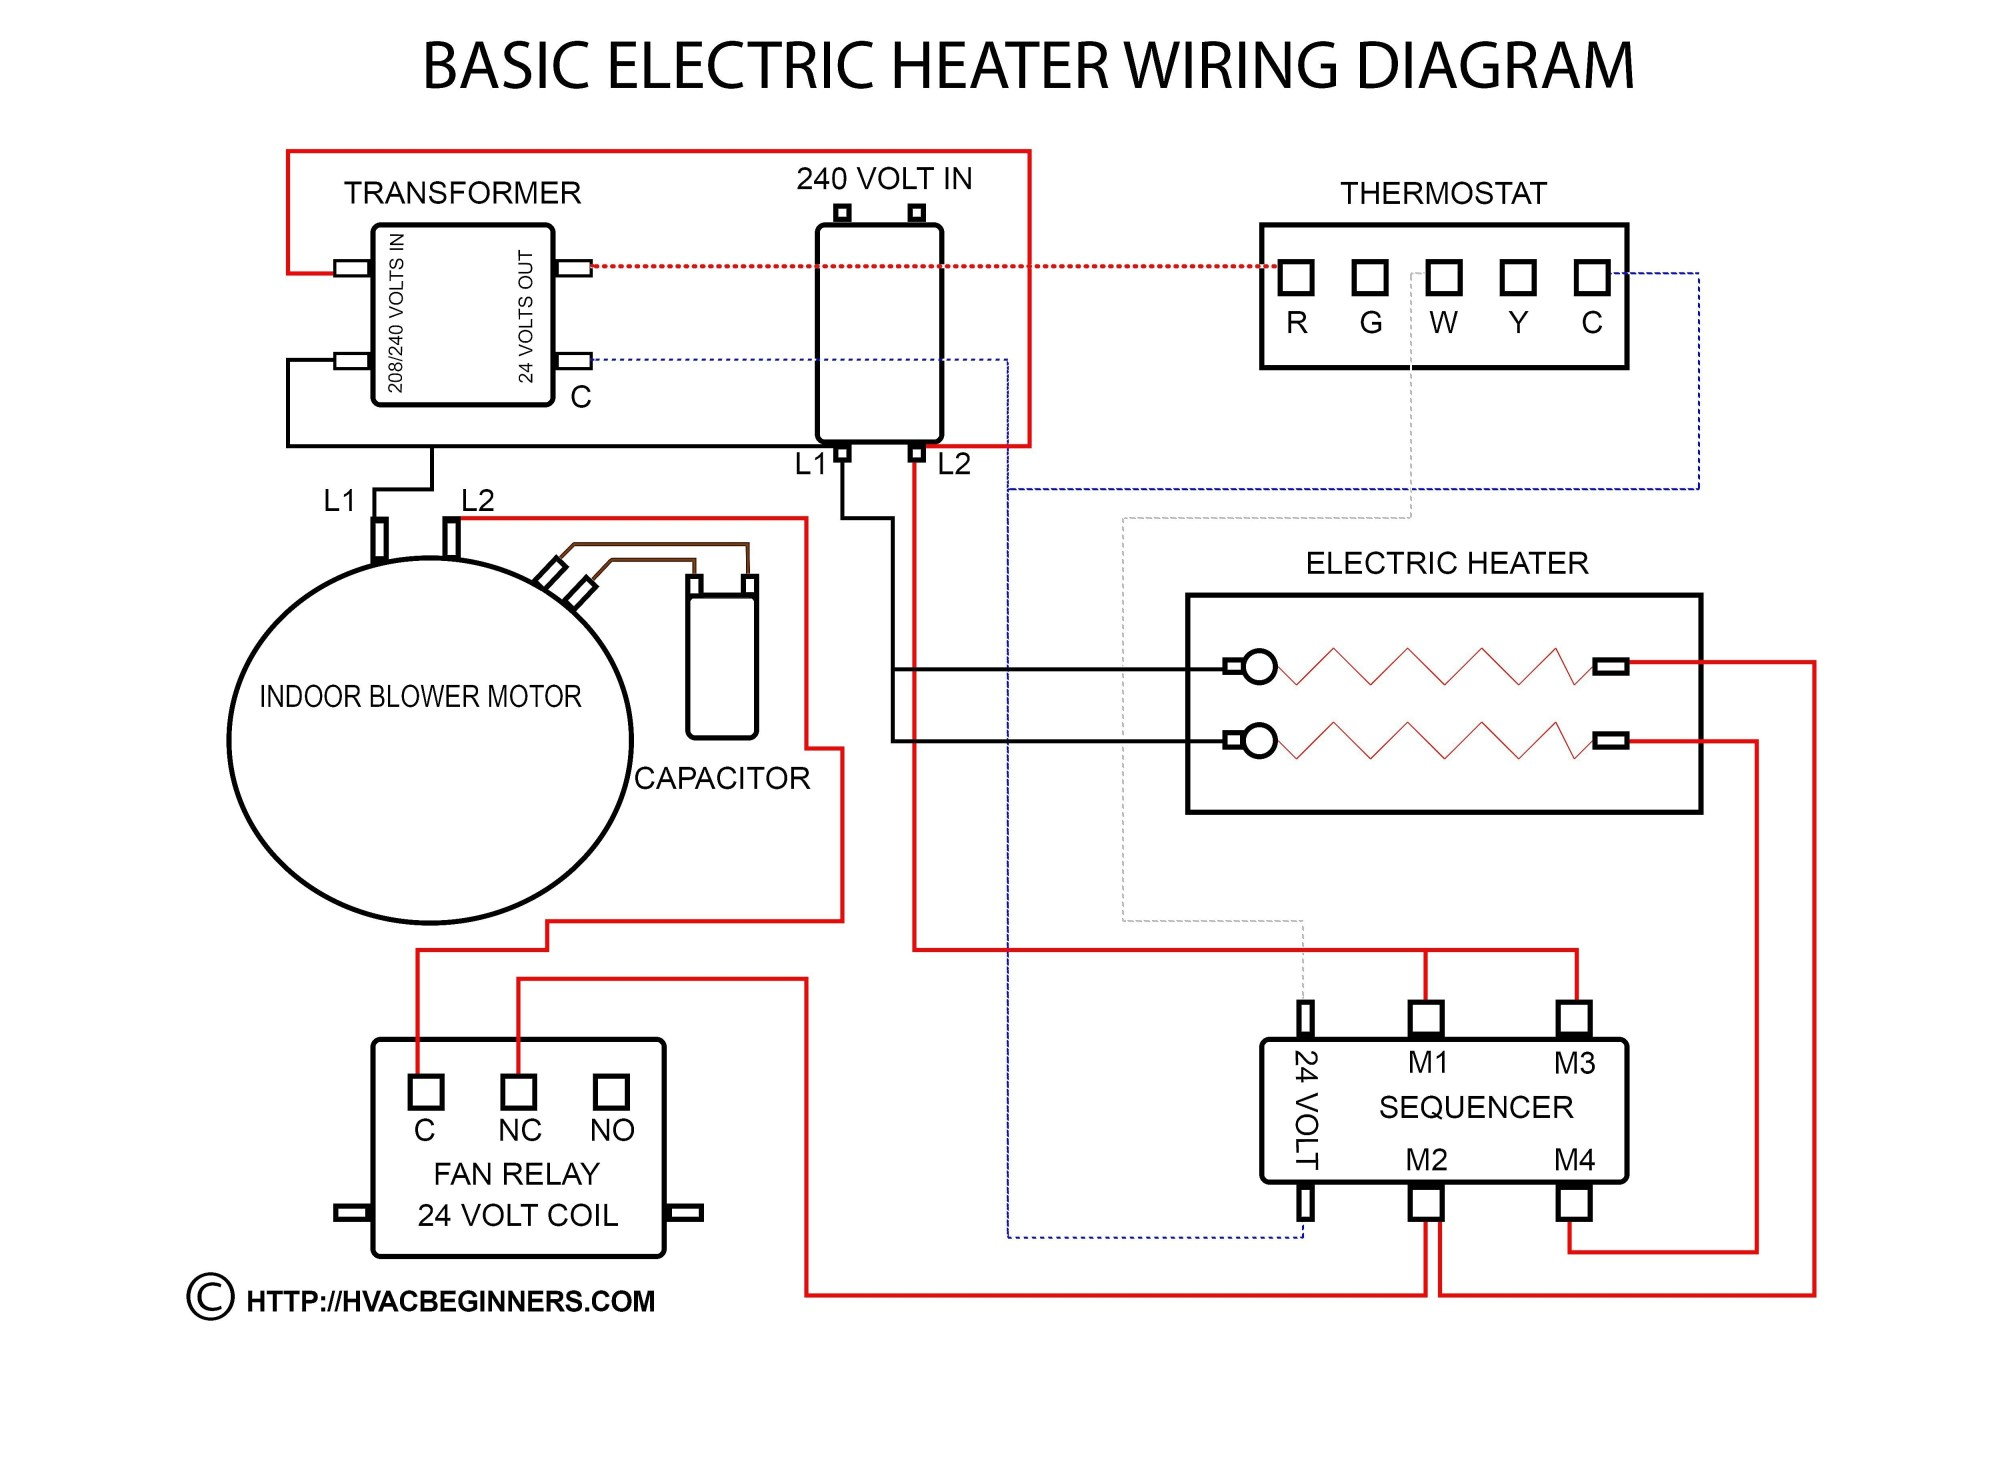 hight resolution of fan relay wiring diagram f250 wiring diagram technic fan relay wiring diagram f250